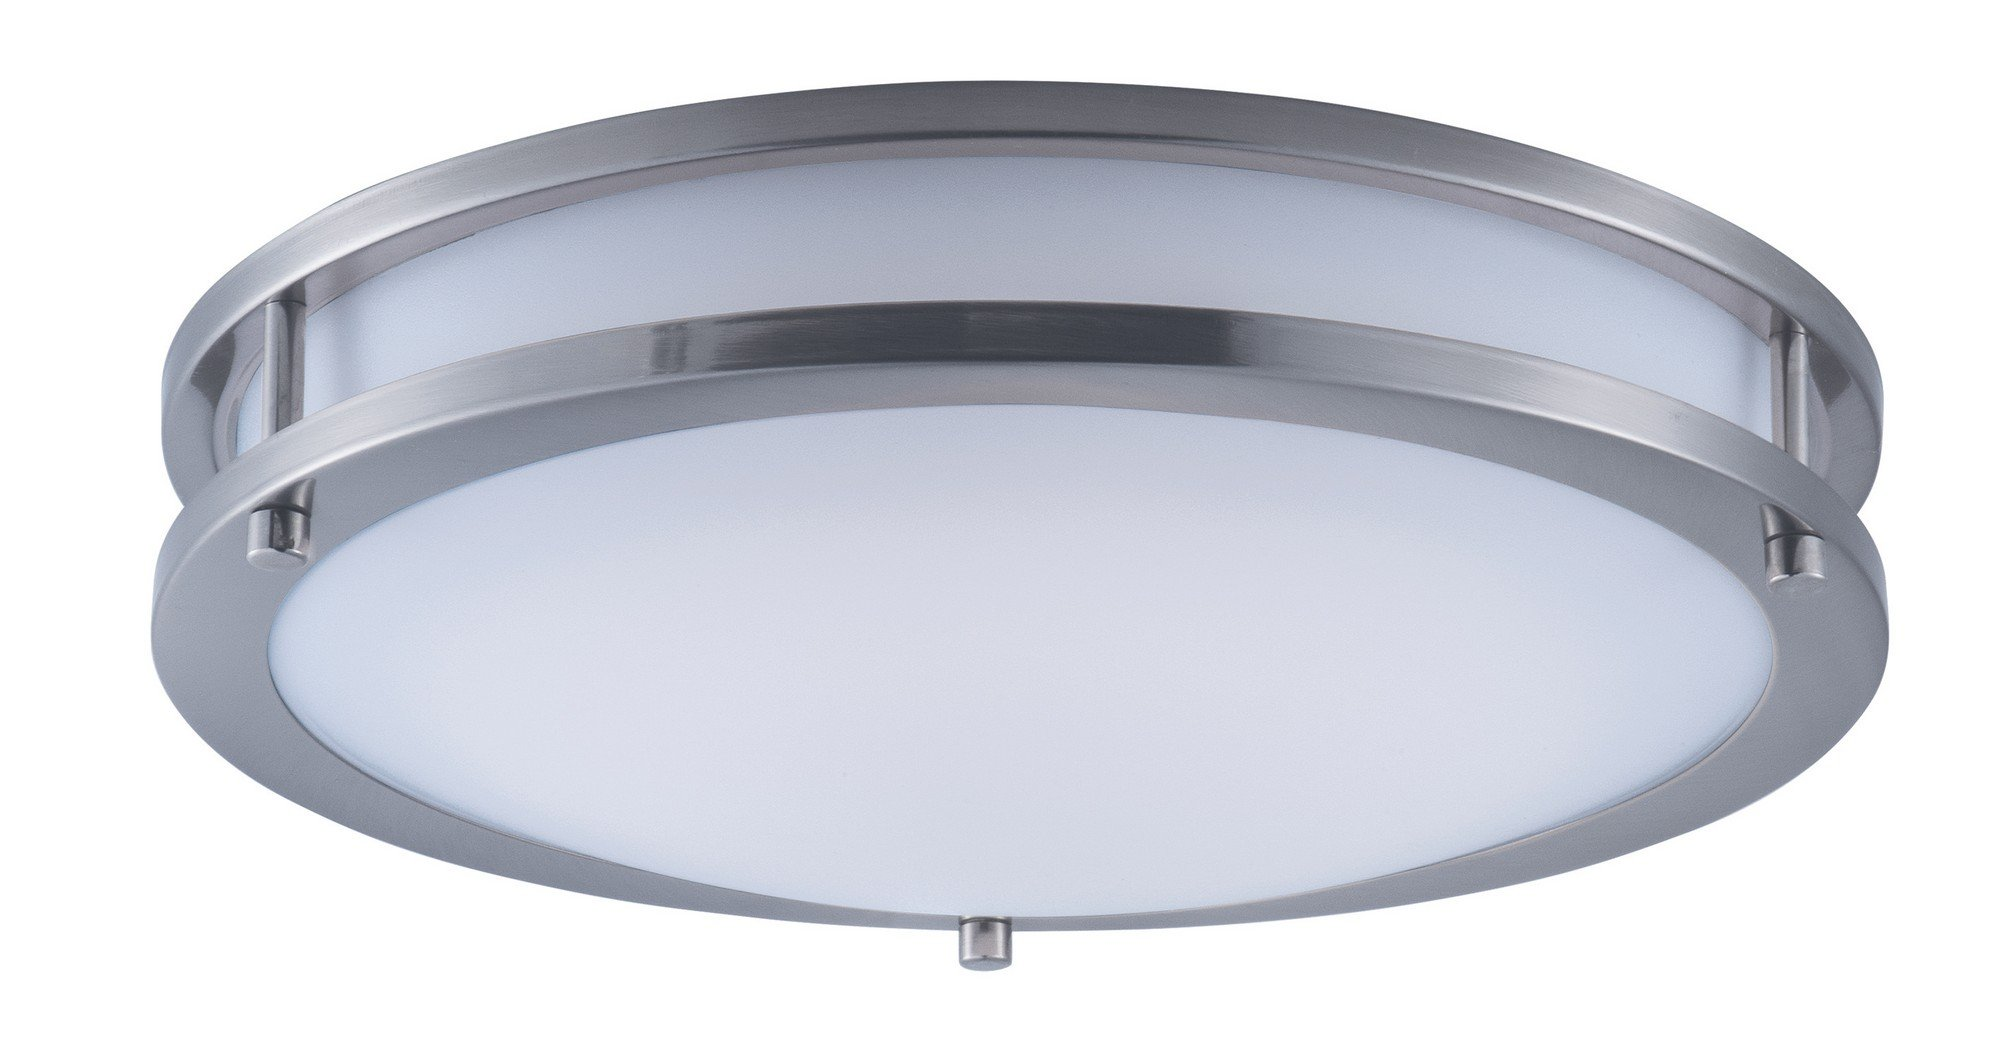 Maxim 55543WTSN Linear LED Flush Mount, Satin Nickel Finish, White Glass, LED Bulb , 40W Max., Wet Safety Rating, Standard Dimmable, Glass Shade Material, 2016 Rated Lumens